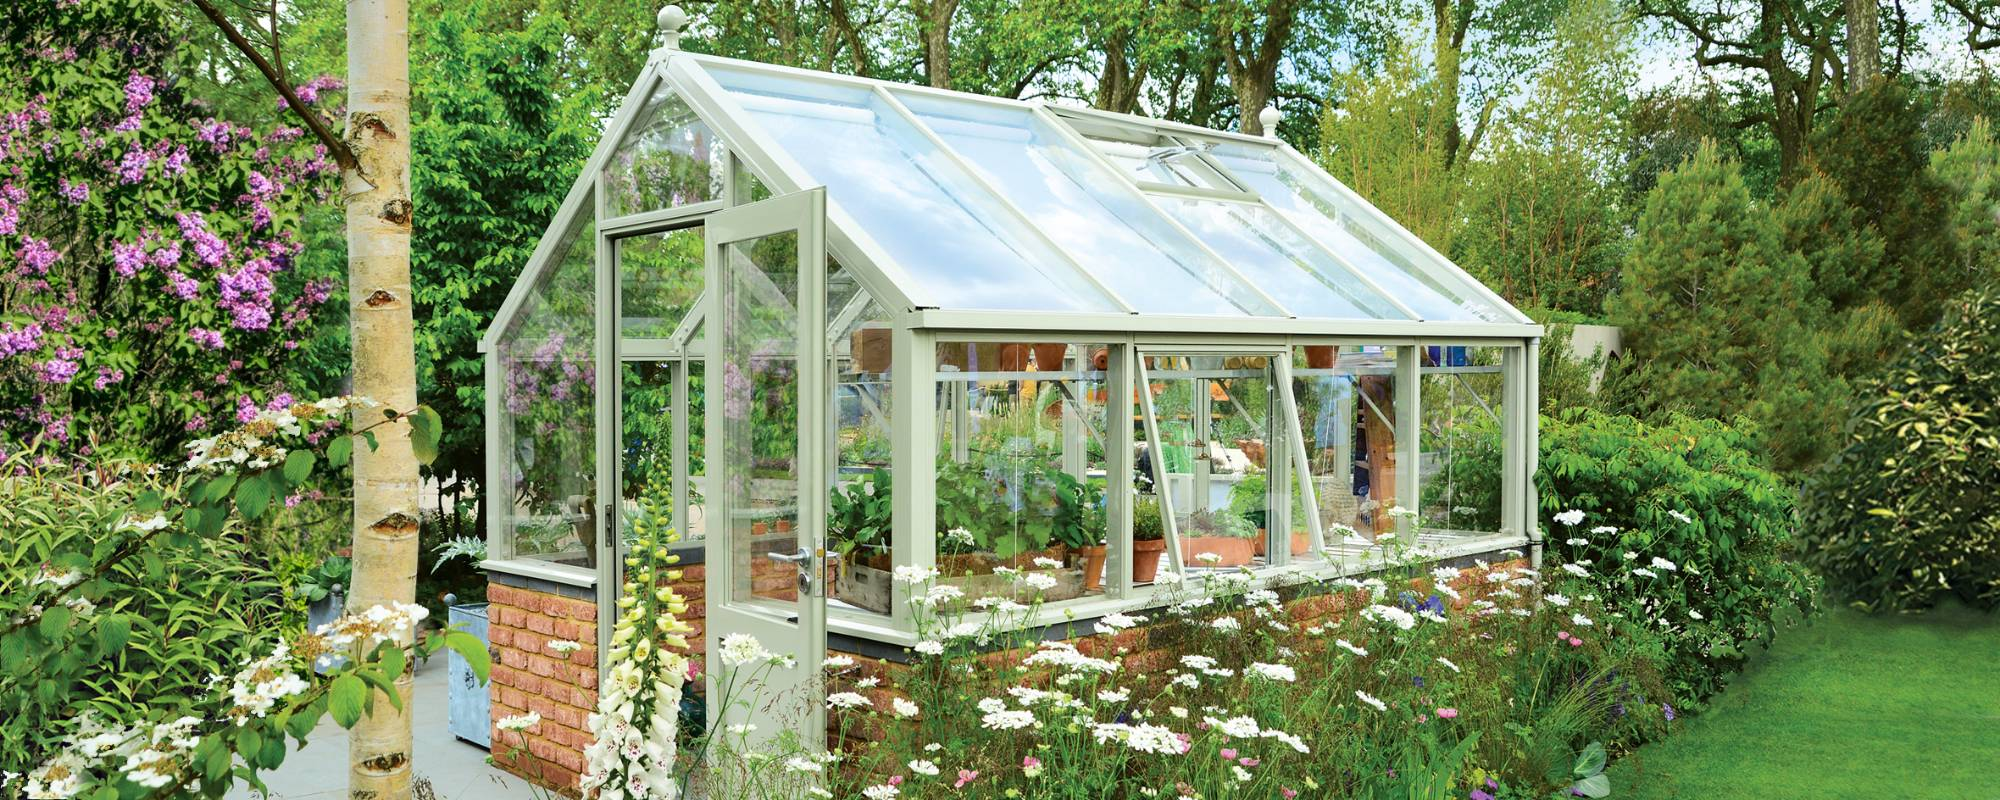 Image result for Greenhouses